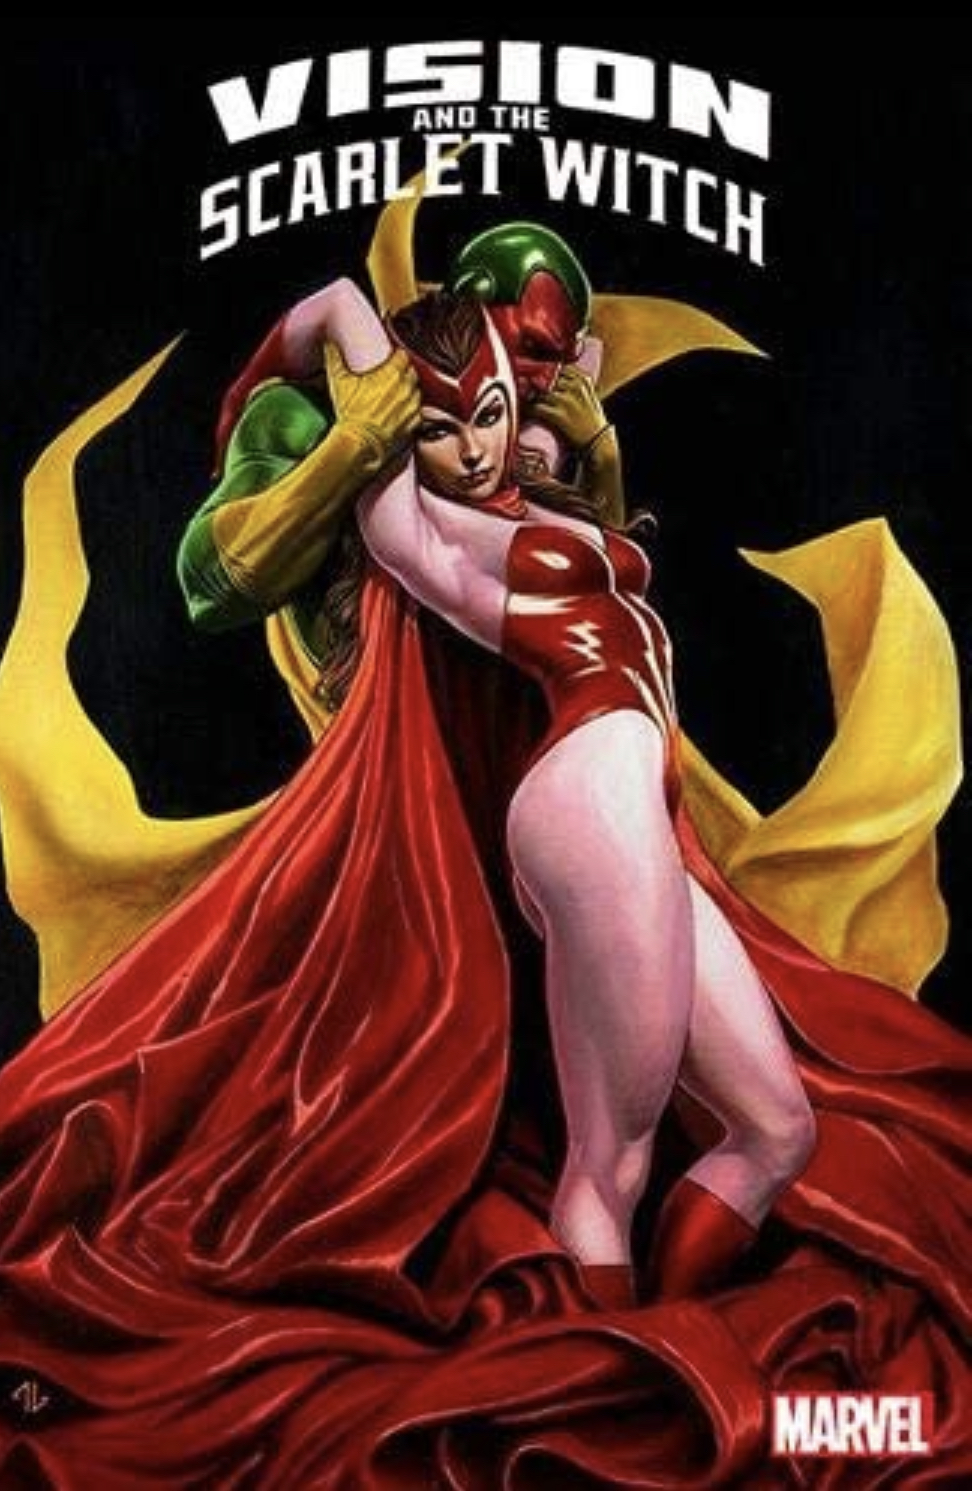 Vision And Scarlet Witch by Rick Leonardi, Don Heck, Steve Englehart, Bill Mantlo